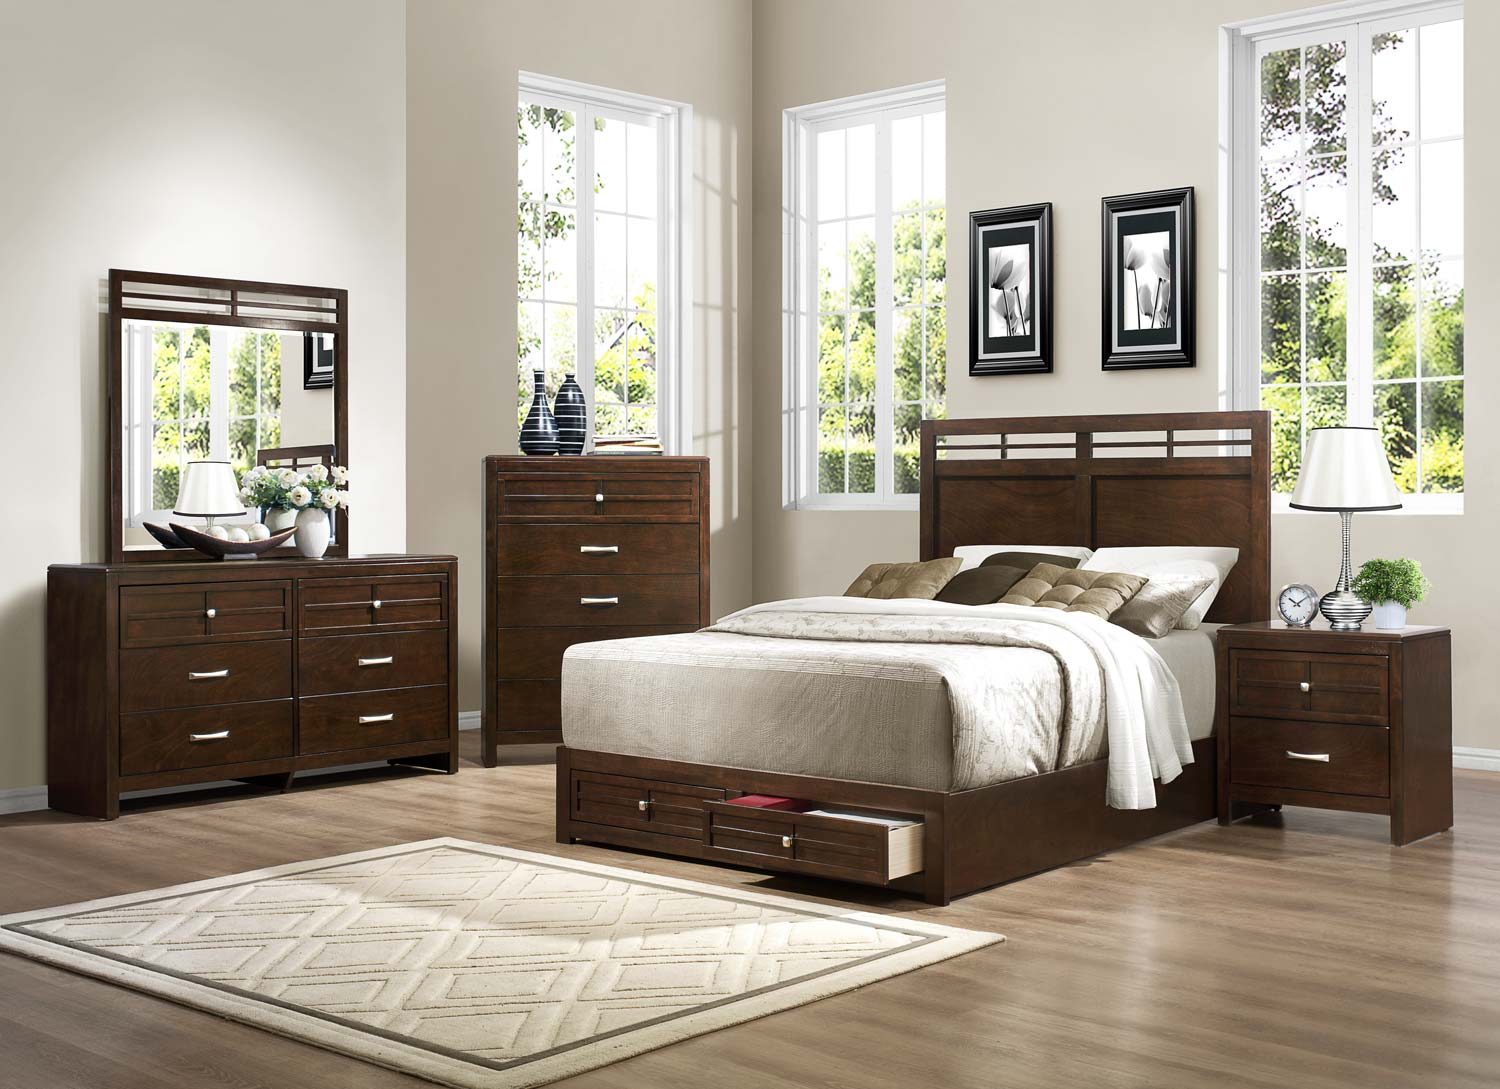 Homelegance Greenfield  Bedroom Set - Espresso